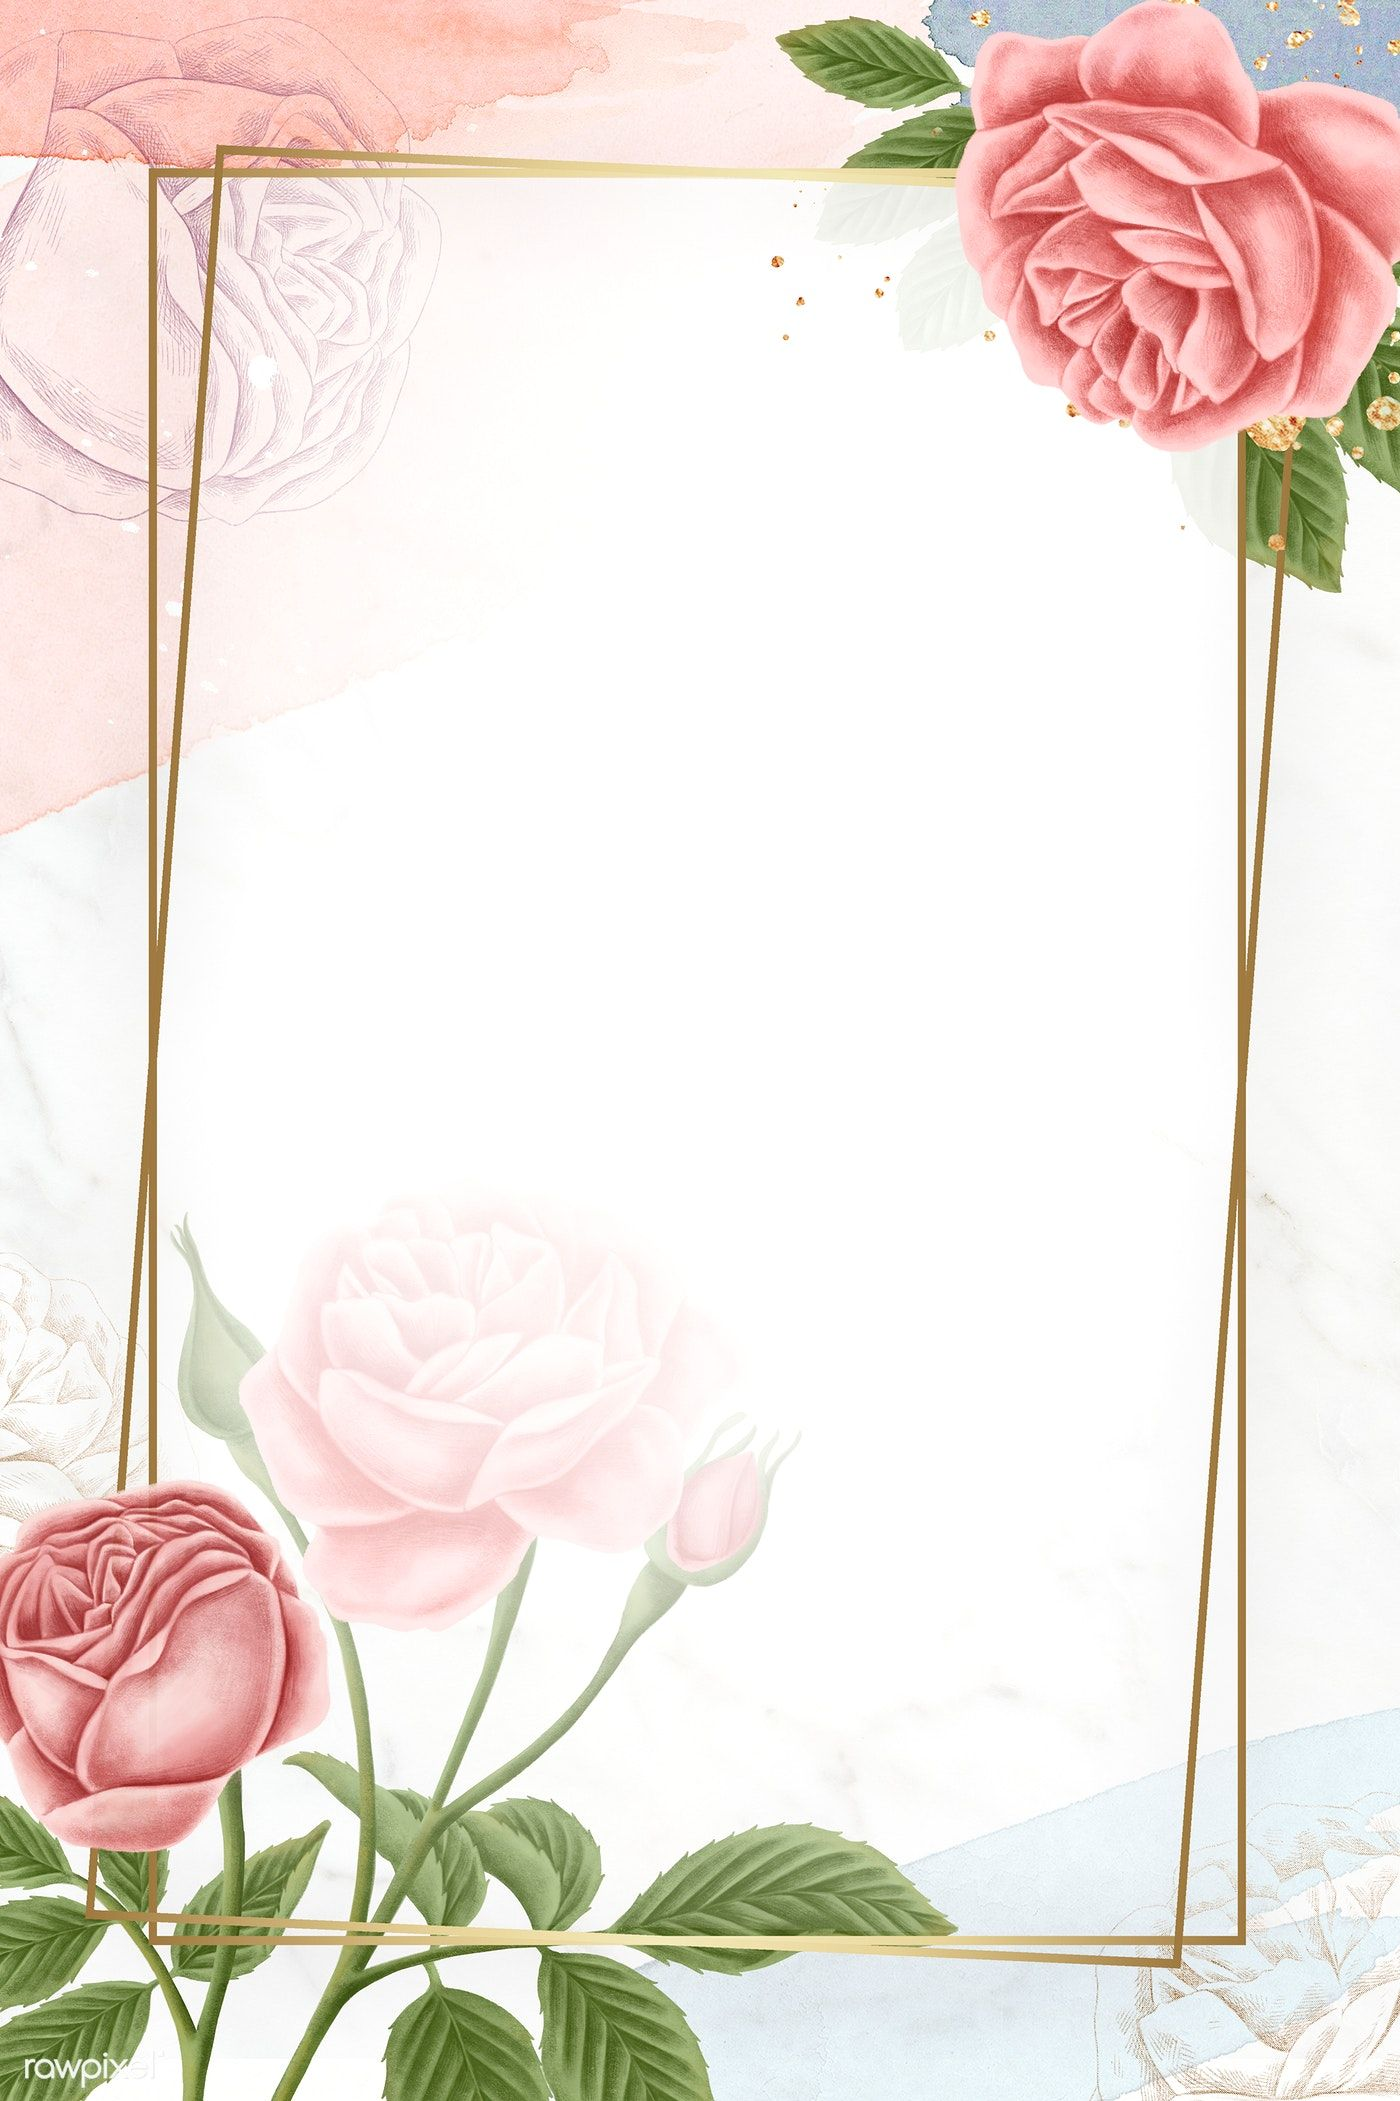 Download Hand Drawn Pink Roses Frame On Pastel Pink Background For Free Rose Frame How To Draw Hands Pink Background